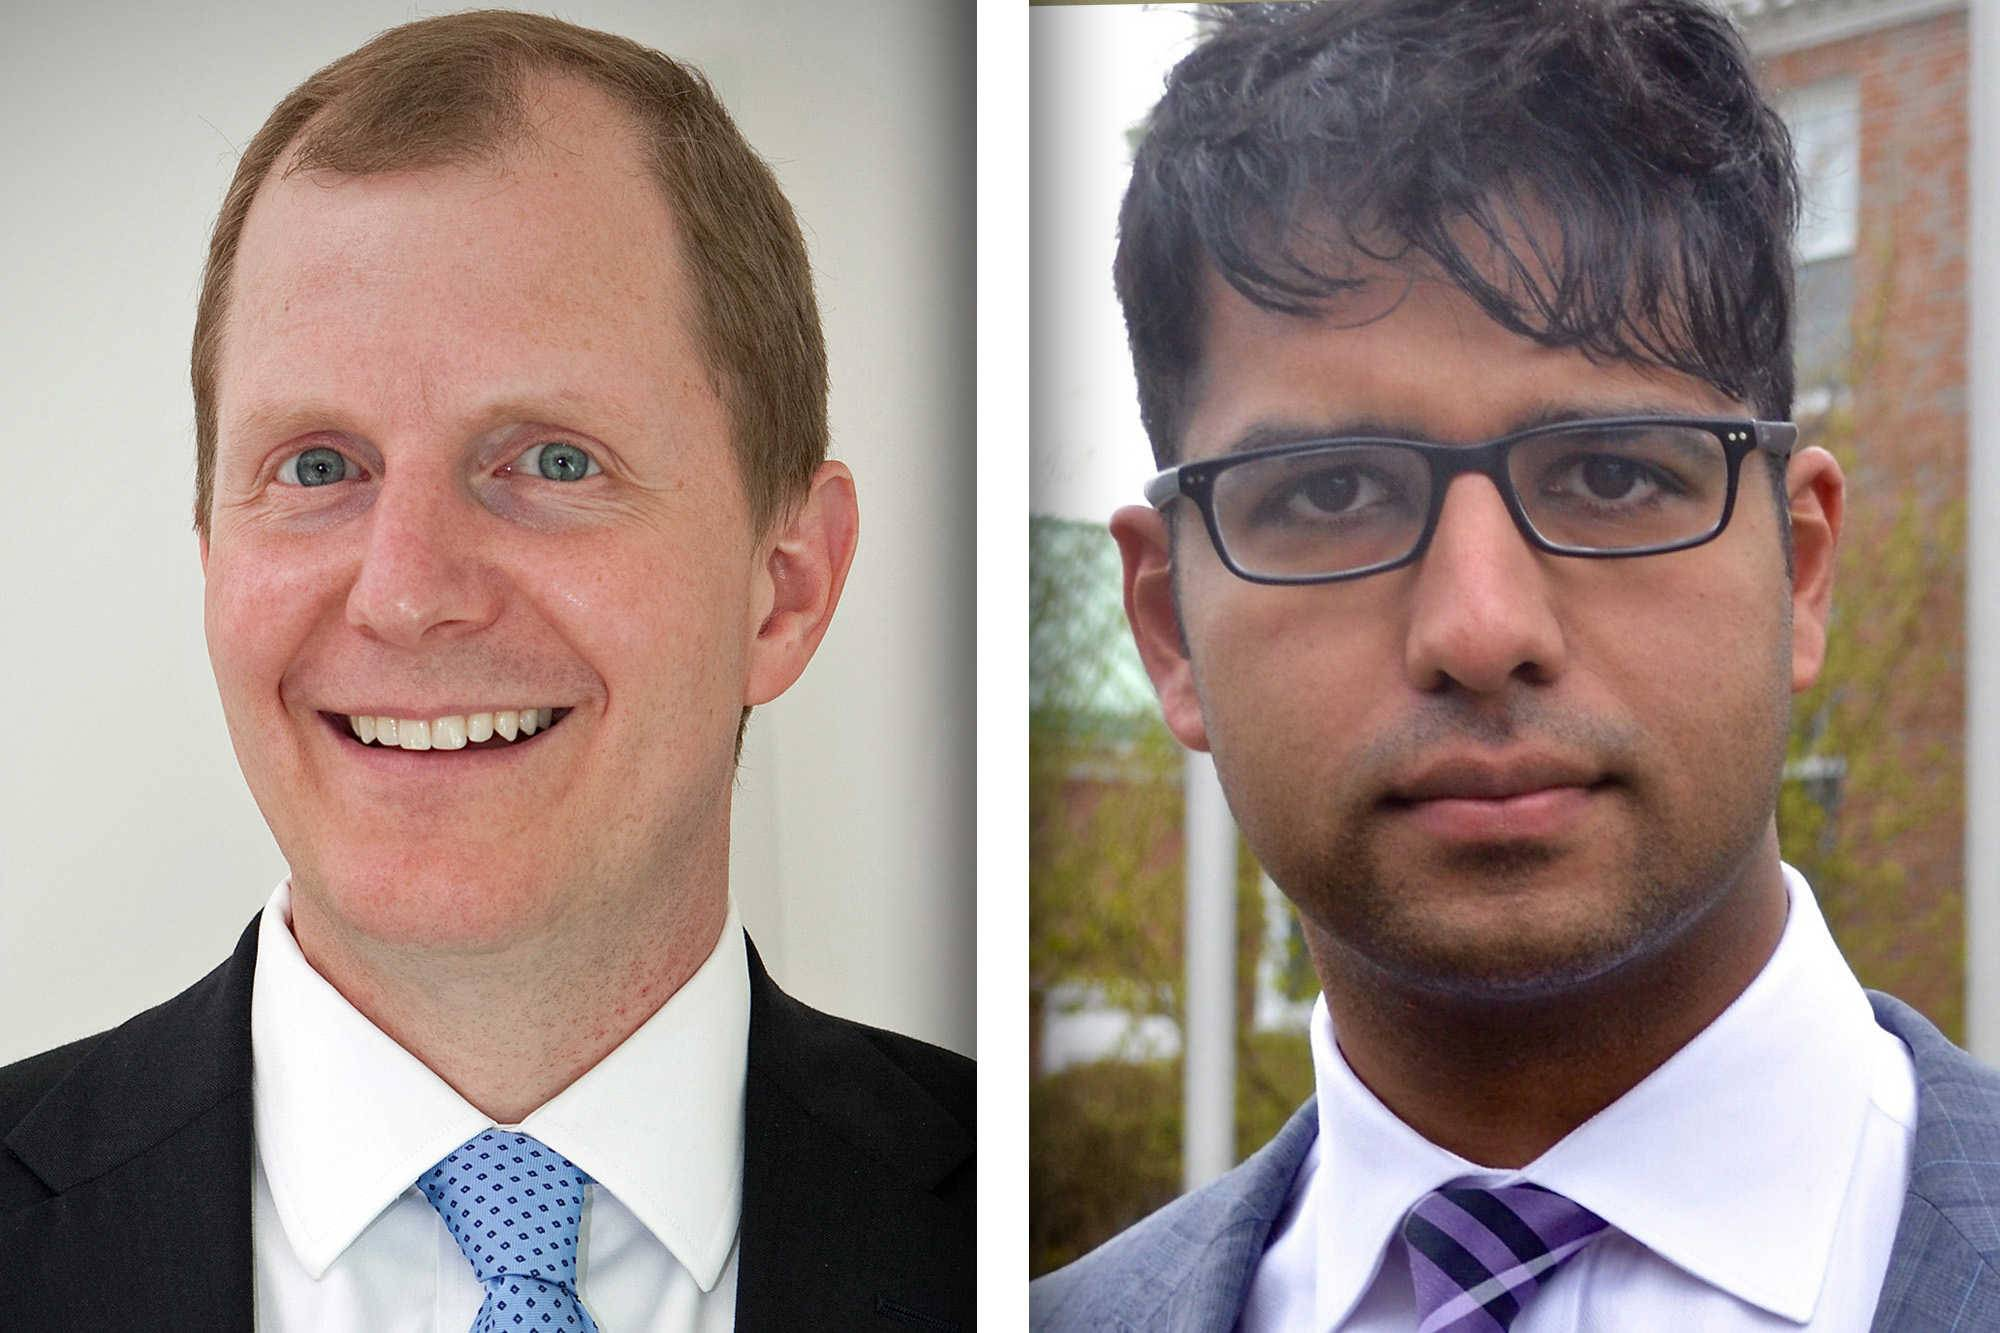 Republican Tim Elliott, left, and Democrat Khizar Jaffri are candidates for DuPage County Board 4 (4-year-seat).